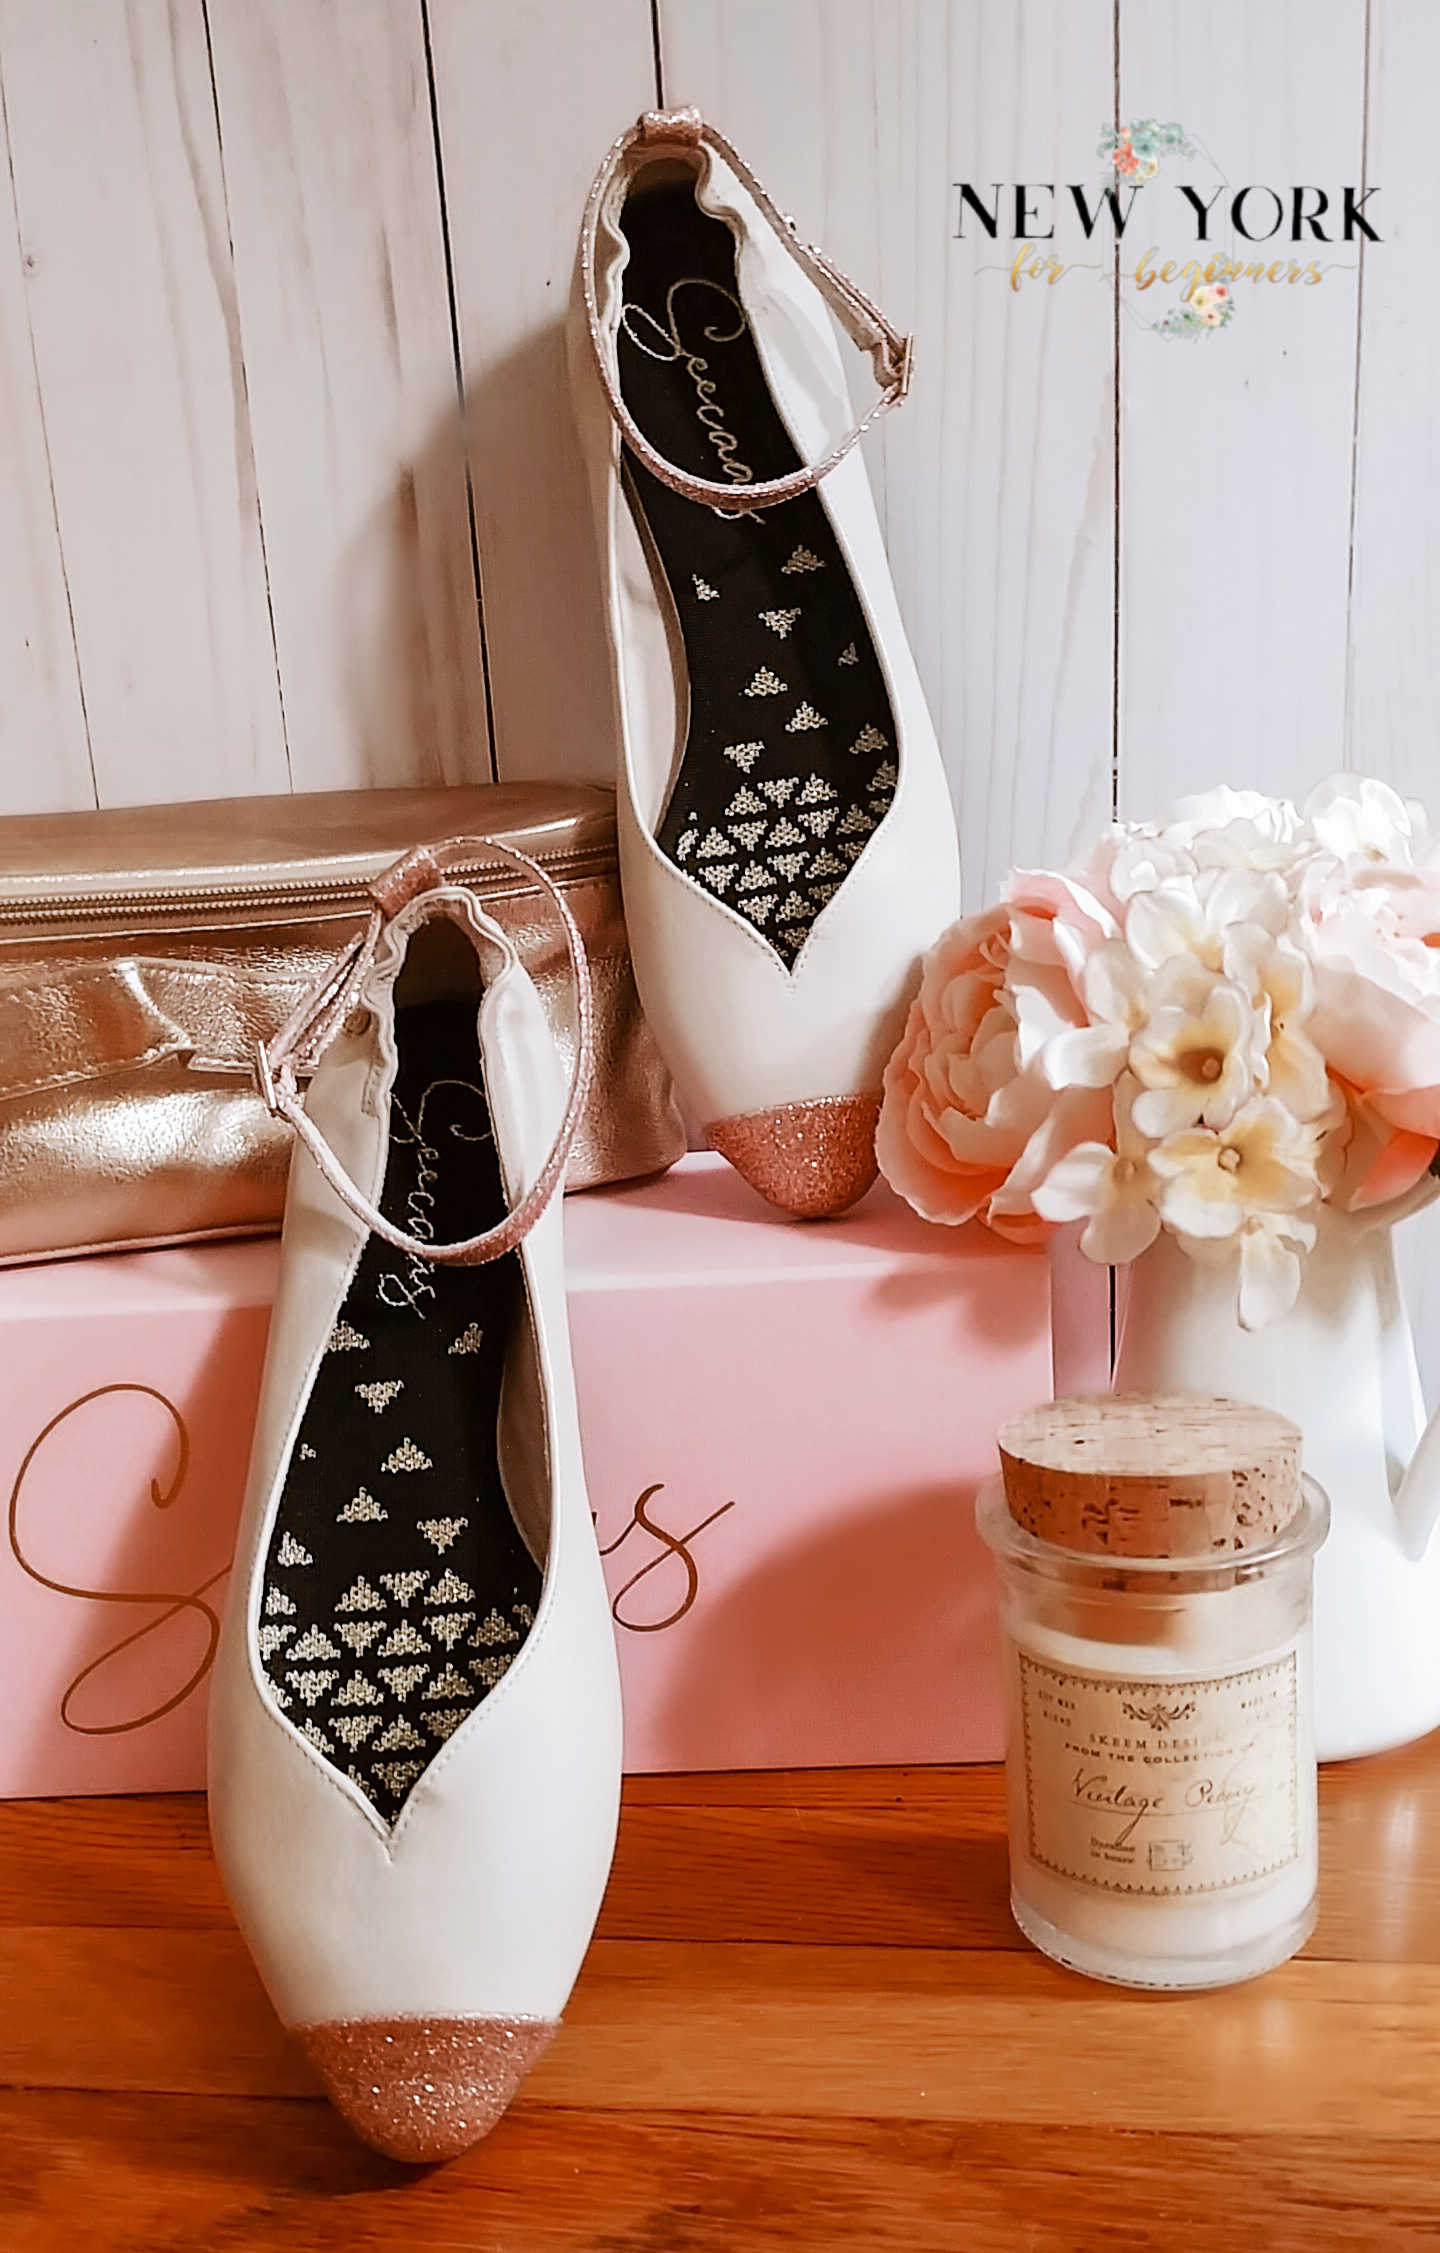 A Seecas pair of pink flats with a white vase with pink and white roses